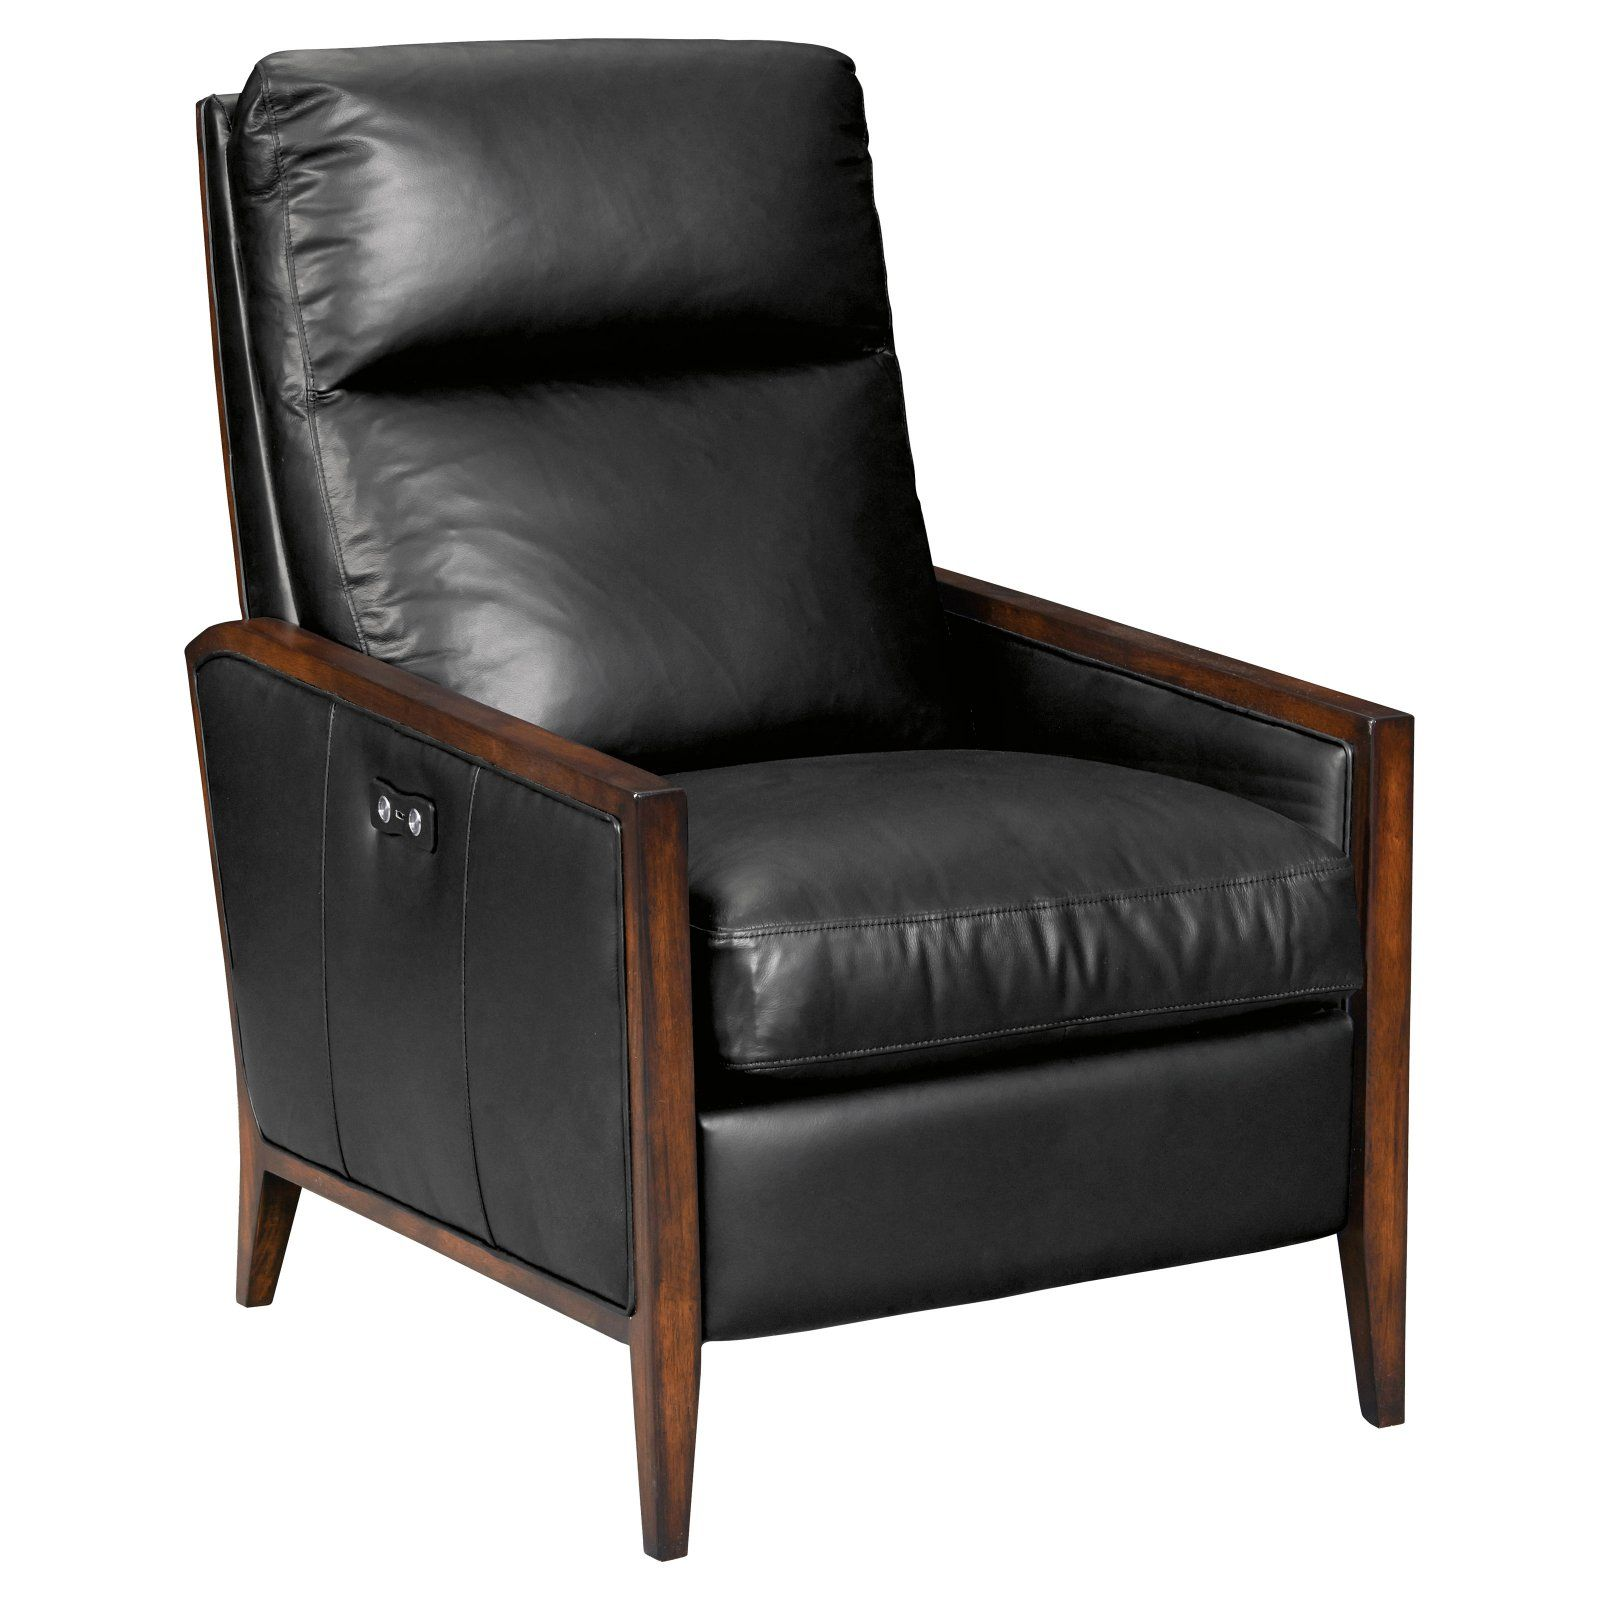 Peachy Hooker Furniture Karter Wood Accent Power Recliner In 2019 Machost Co Dining Chair Design Ideas Machostcouk